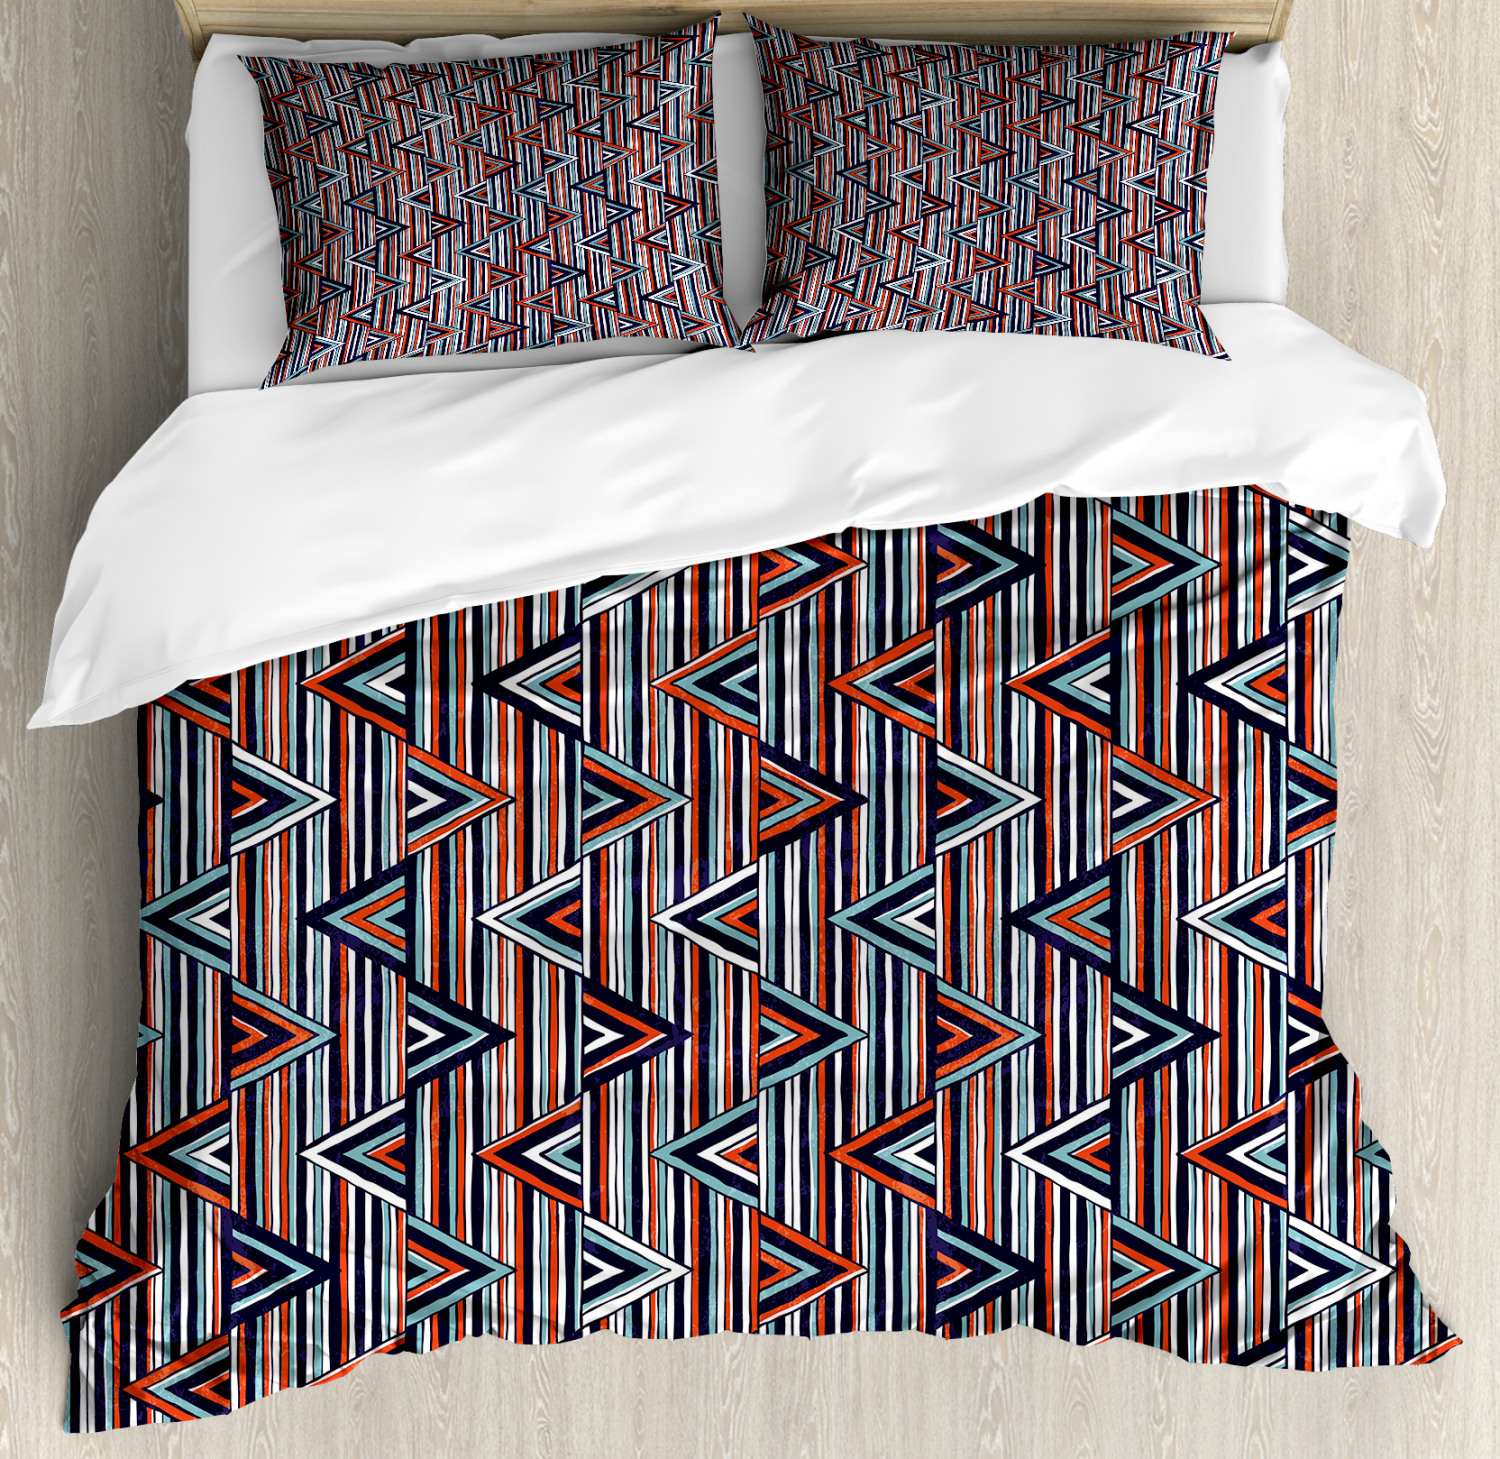 Tribal Duvet Cover Set with Pillow Shams African Ethnic Striped Print